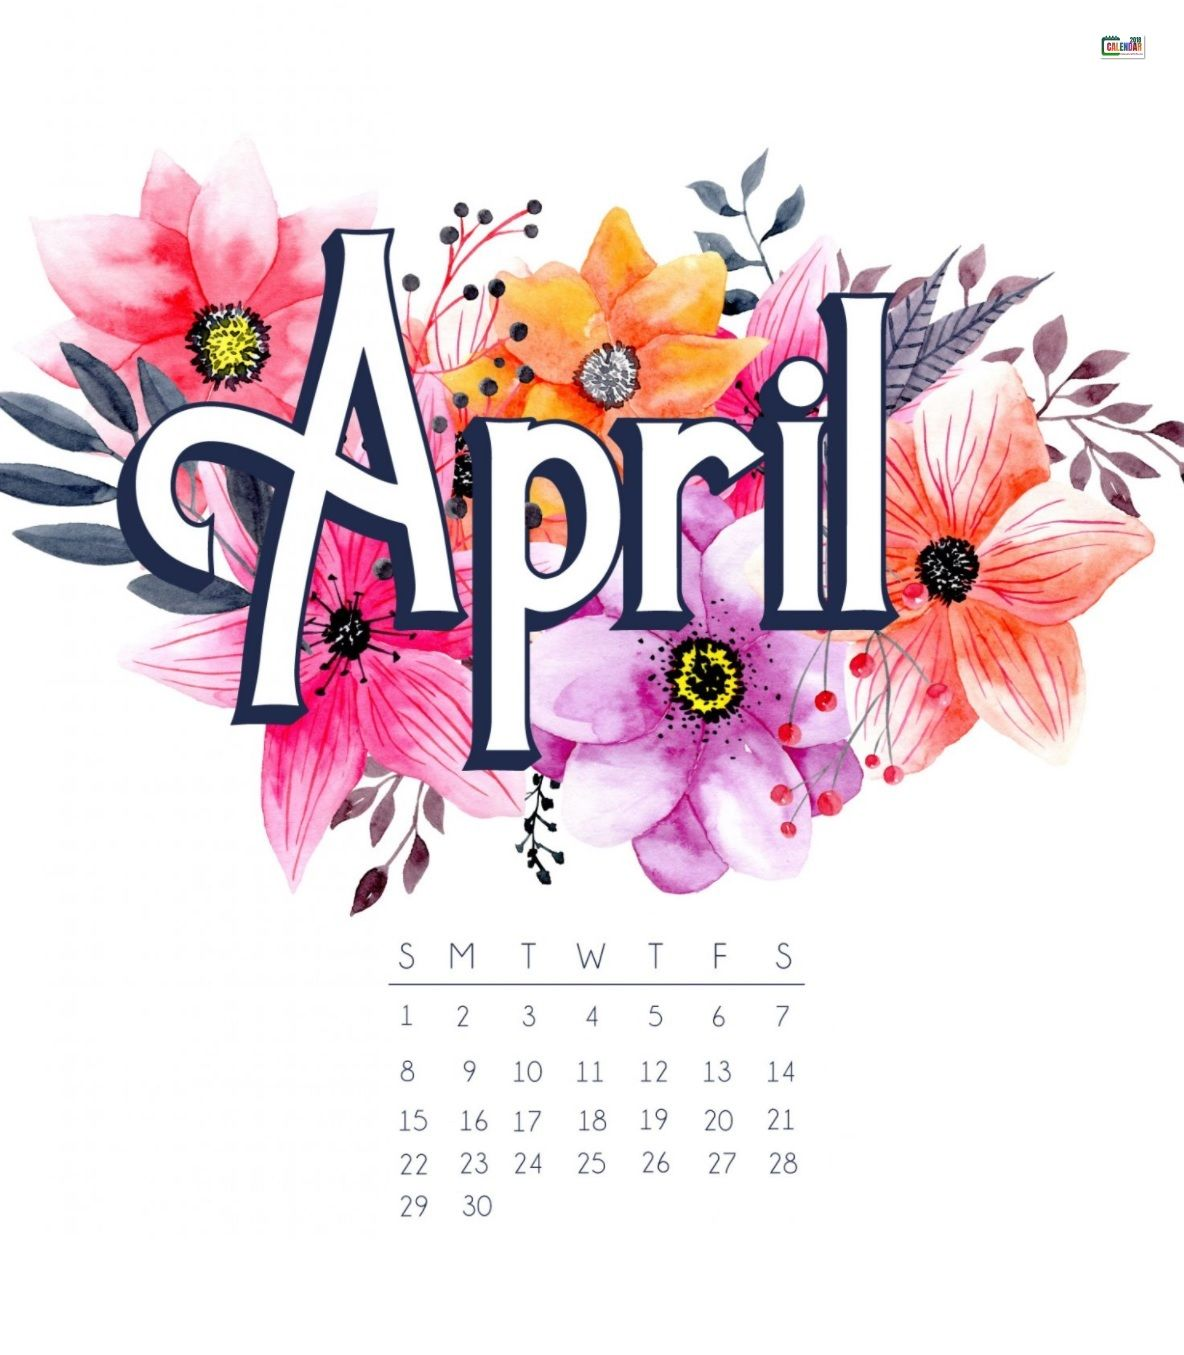 April 2018 Iphone Calendar Wallpaper Calendar Wallpaper